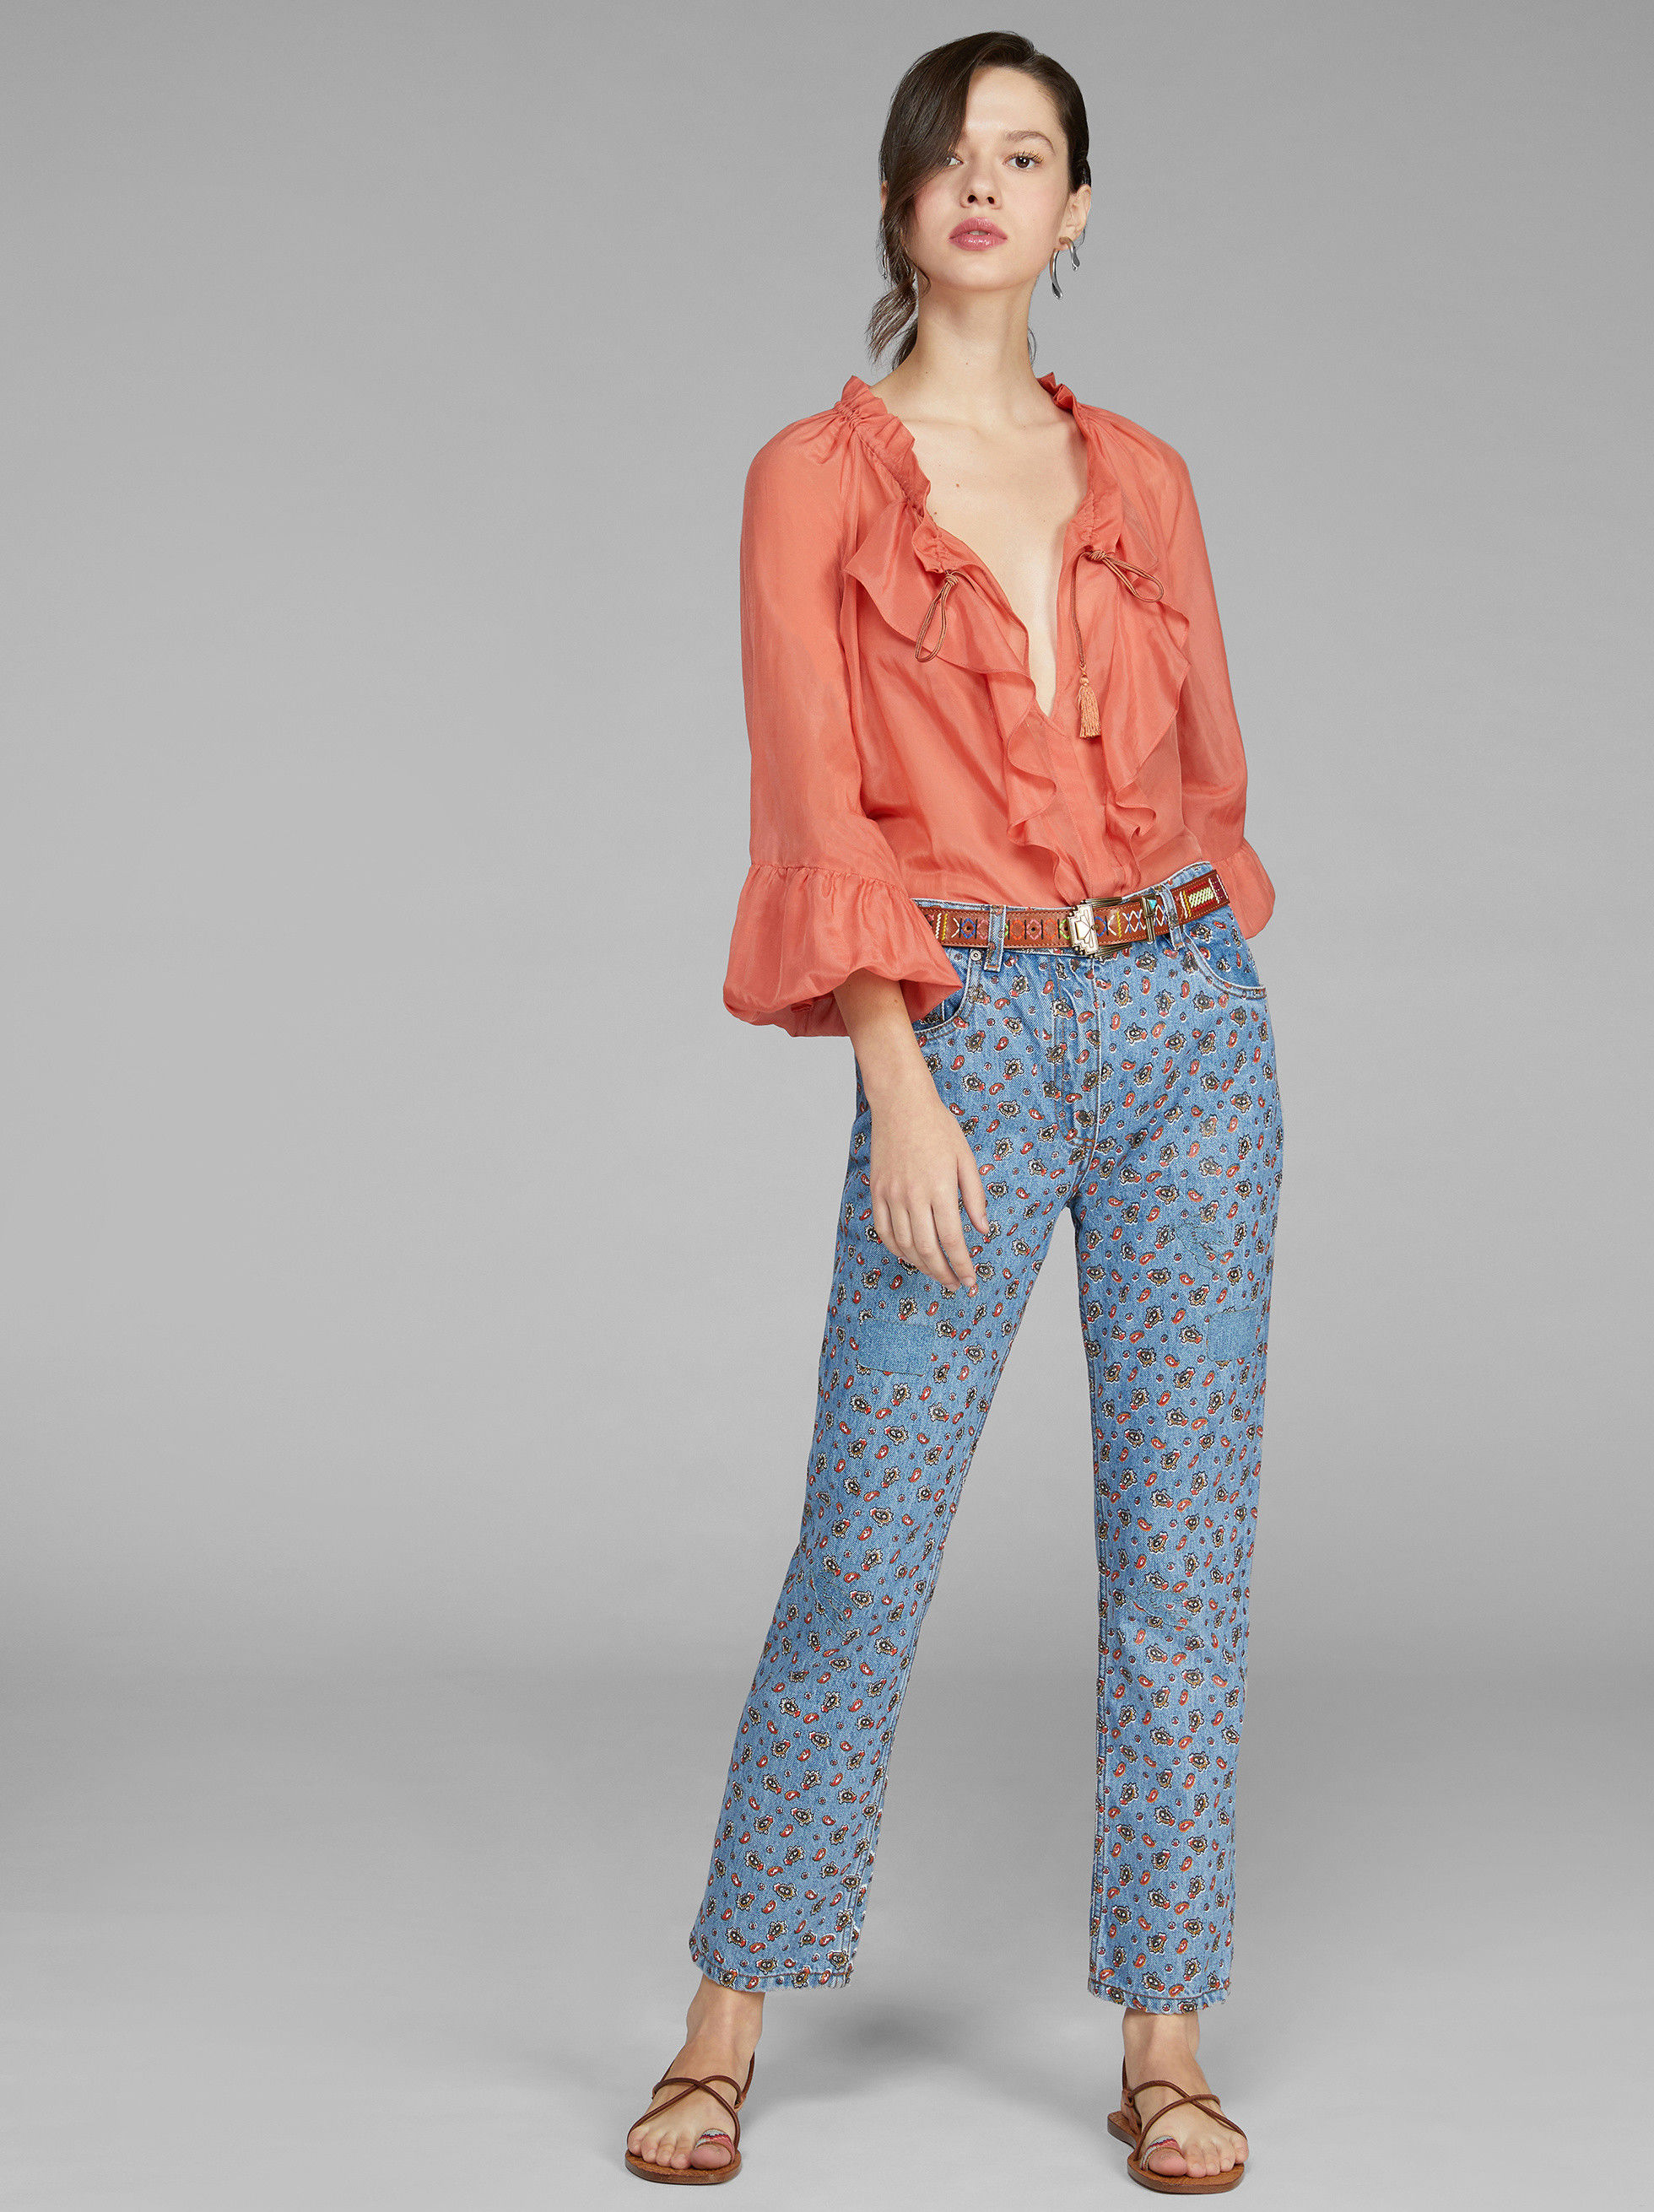 MICRO PAISLEY PRINT JEANS by Etro, available on etro.com Bella Hadid Pants SIMILAR PRODUCT